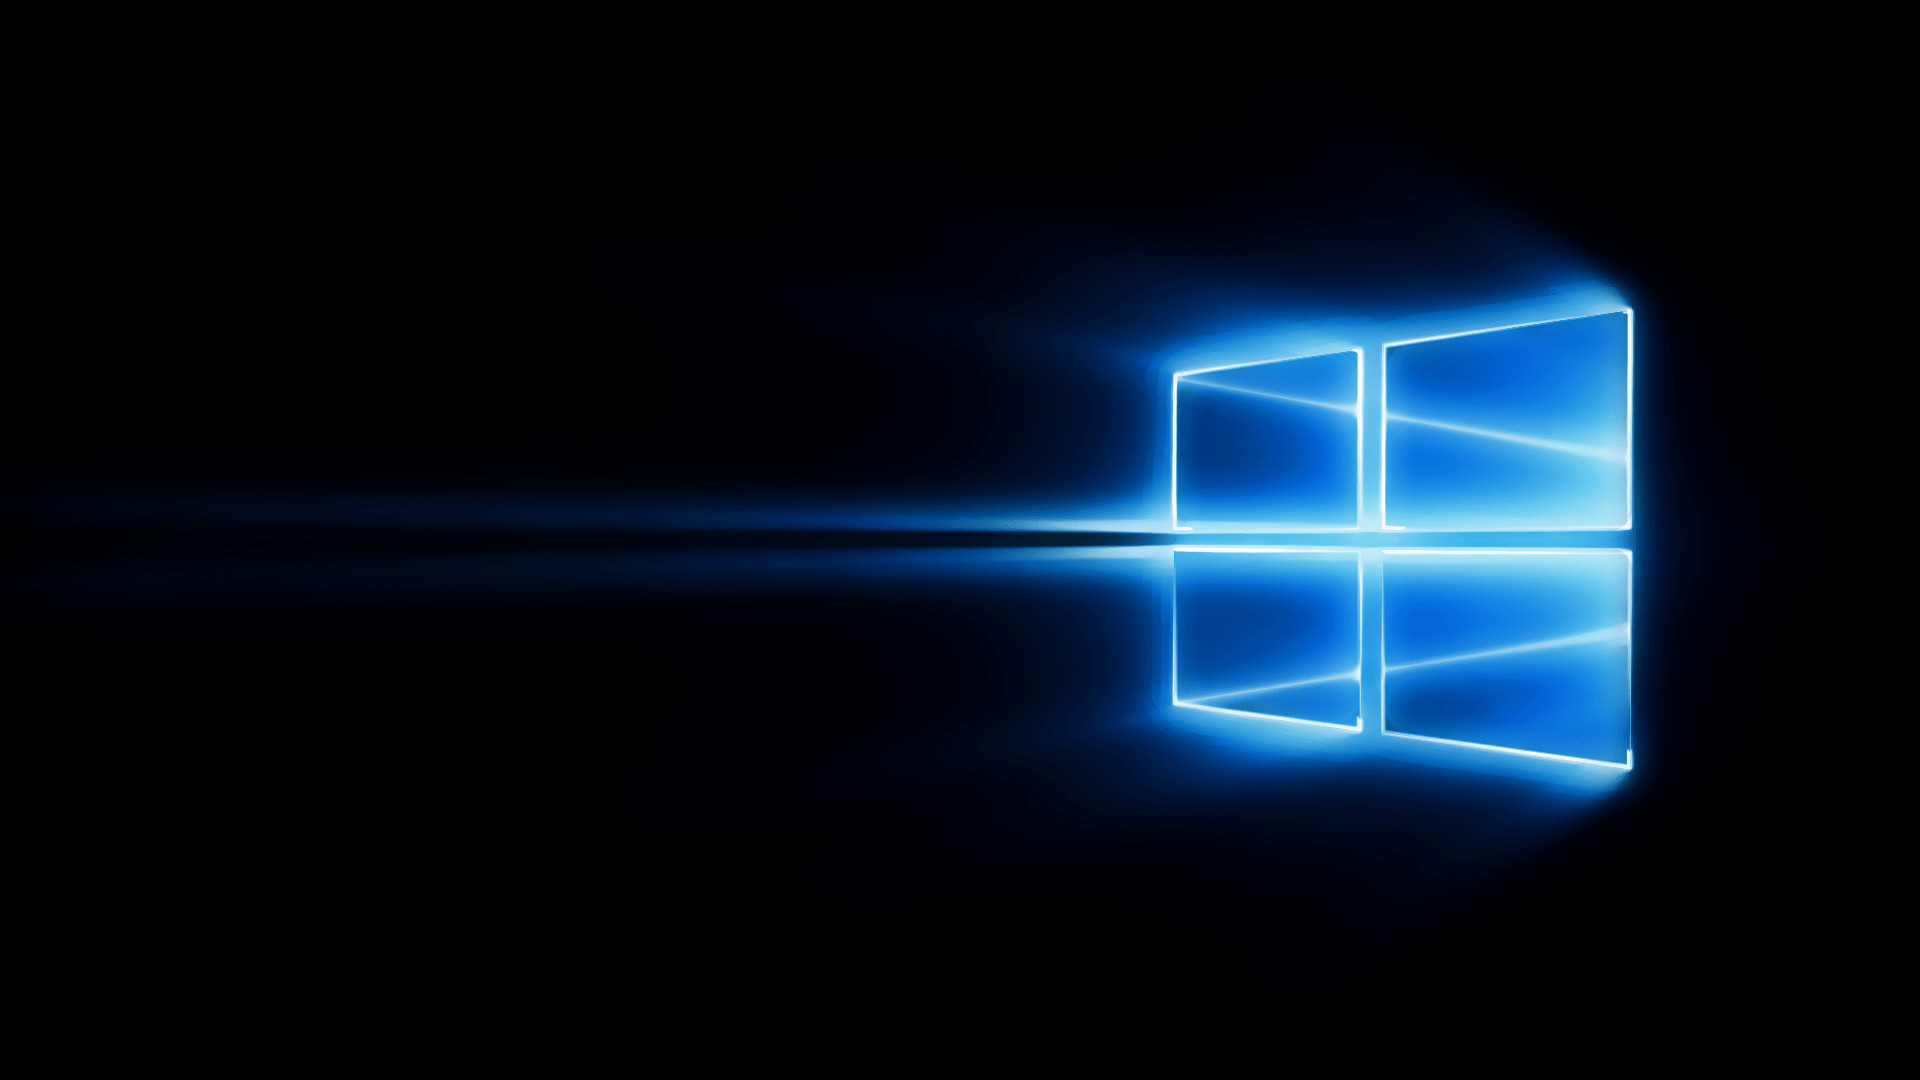 1920x1080 Gallery of microsoft windows 10 gray background wallpaper best hd wallpapers